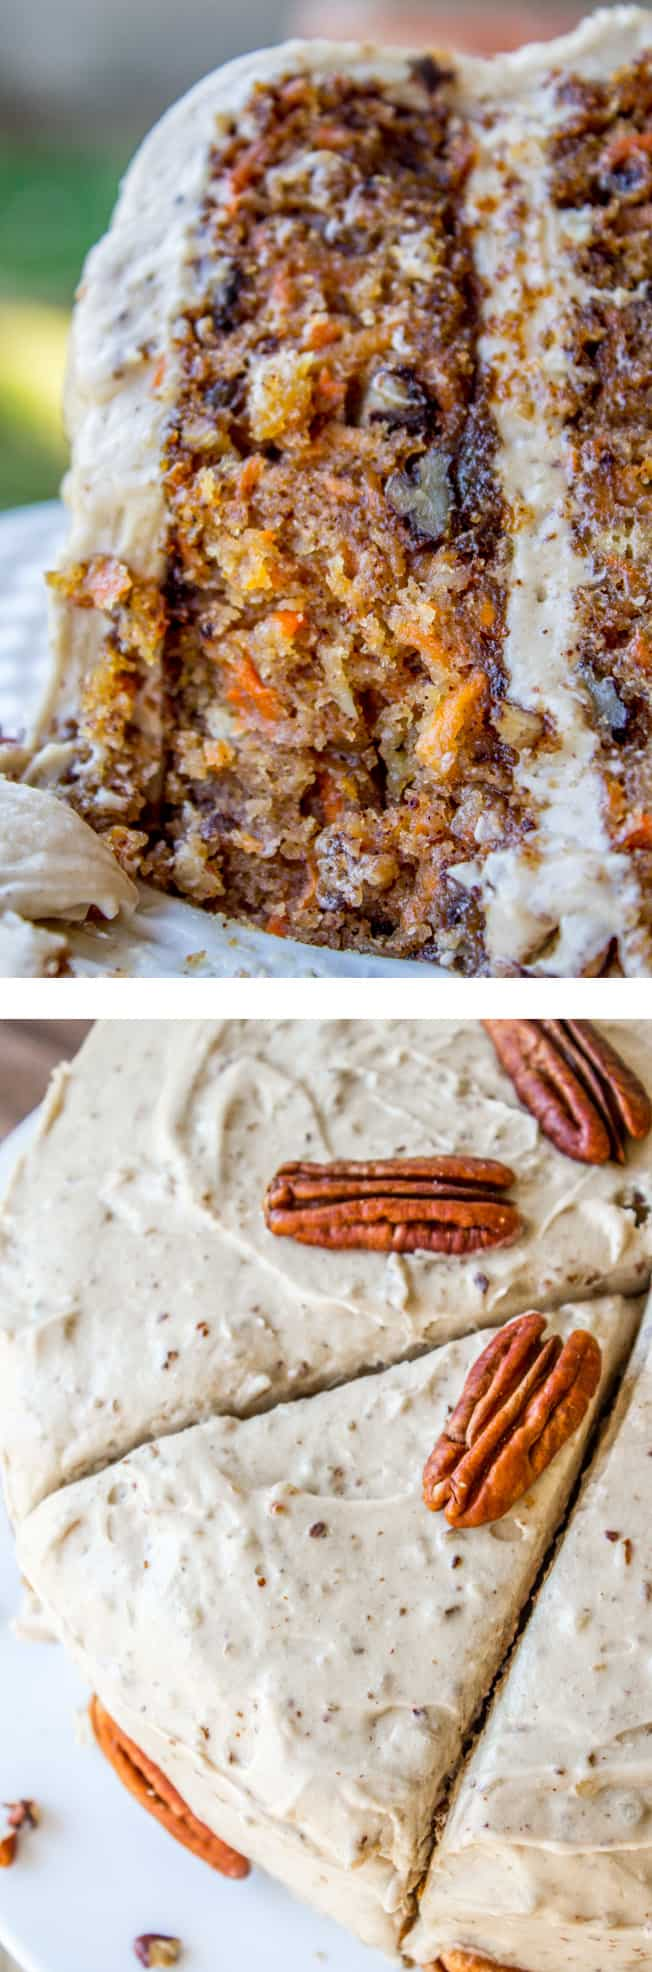 Carrot Cake with Cream Cheese Maple Pecan Frosting   The Food Charlatan Crushed pineapple makes it super moist  It s a great layer cake for spring   and would make a perfect dessert for Easter